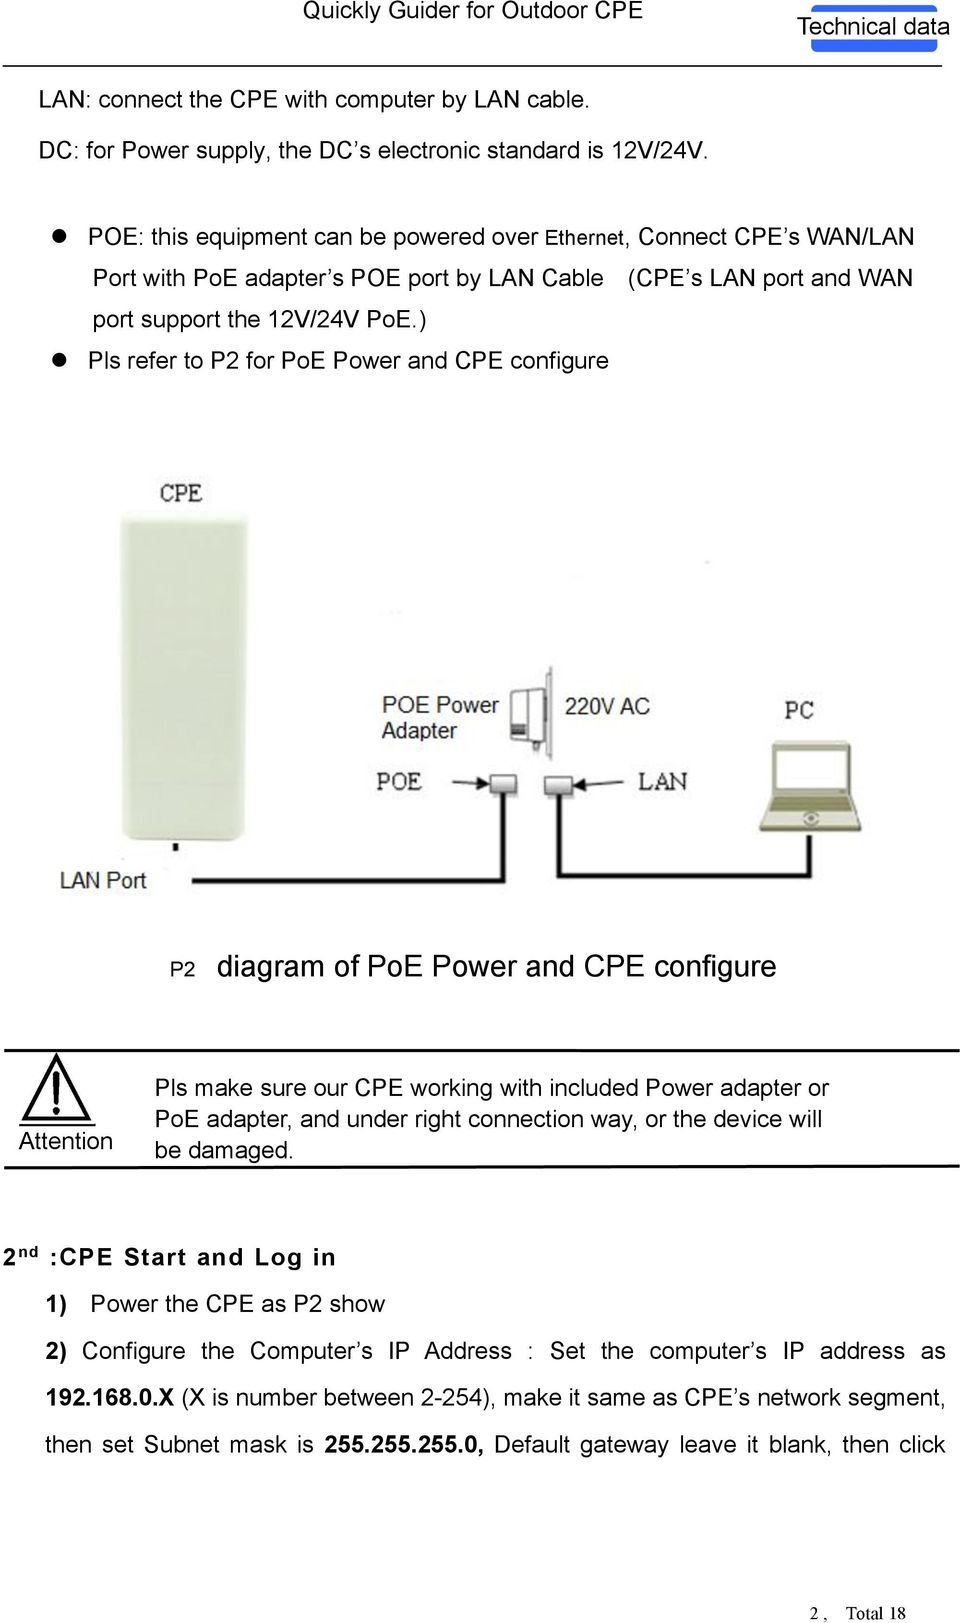 ) Pls refer to P2 for PoE Power and CPE configure P2 diagram of PoE Power and CPE configure Attention Pls make sure our CPE working with included Power adapter or PoE adapter, and under right